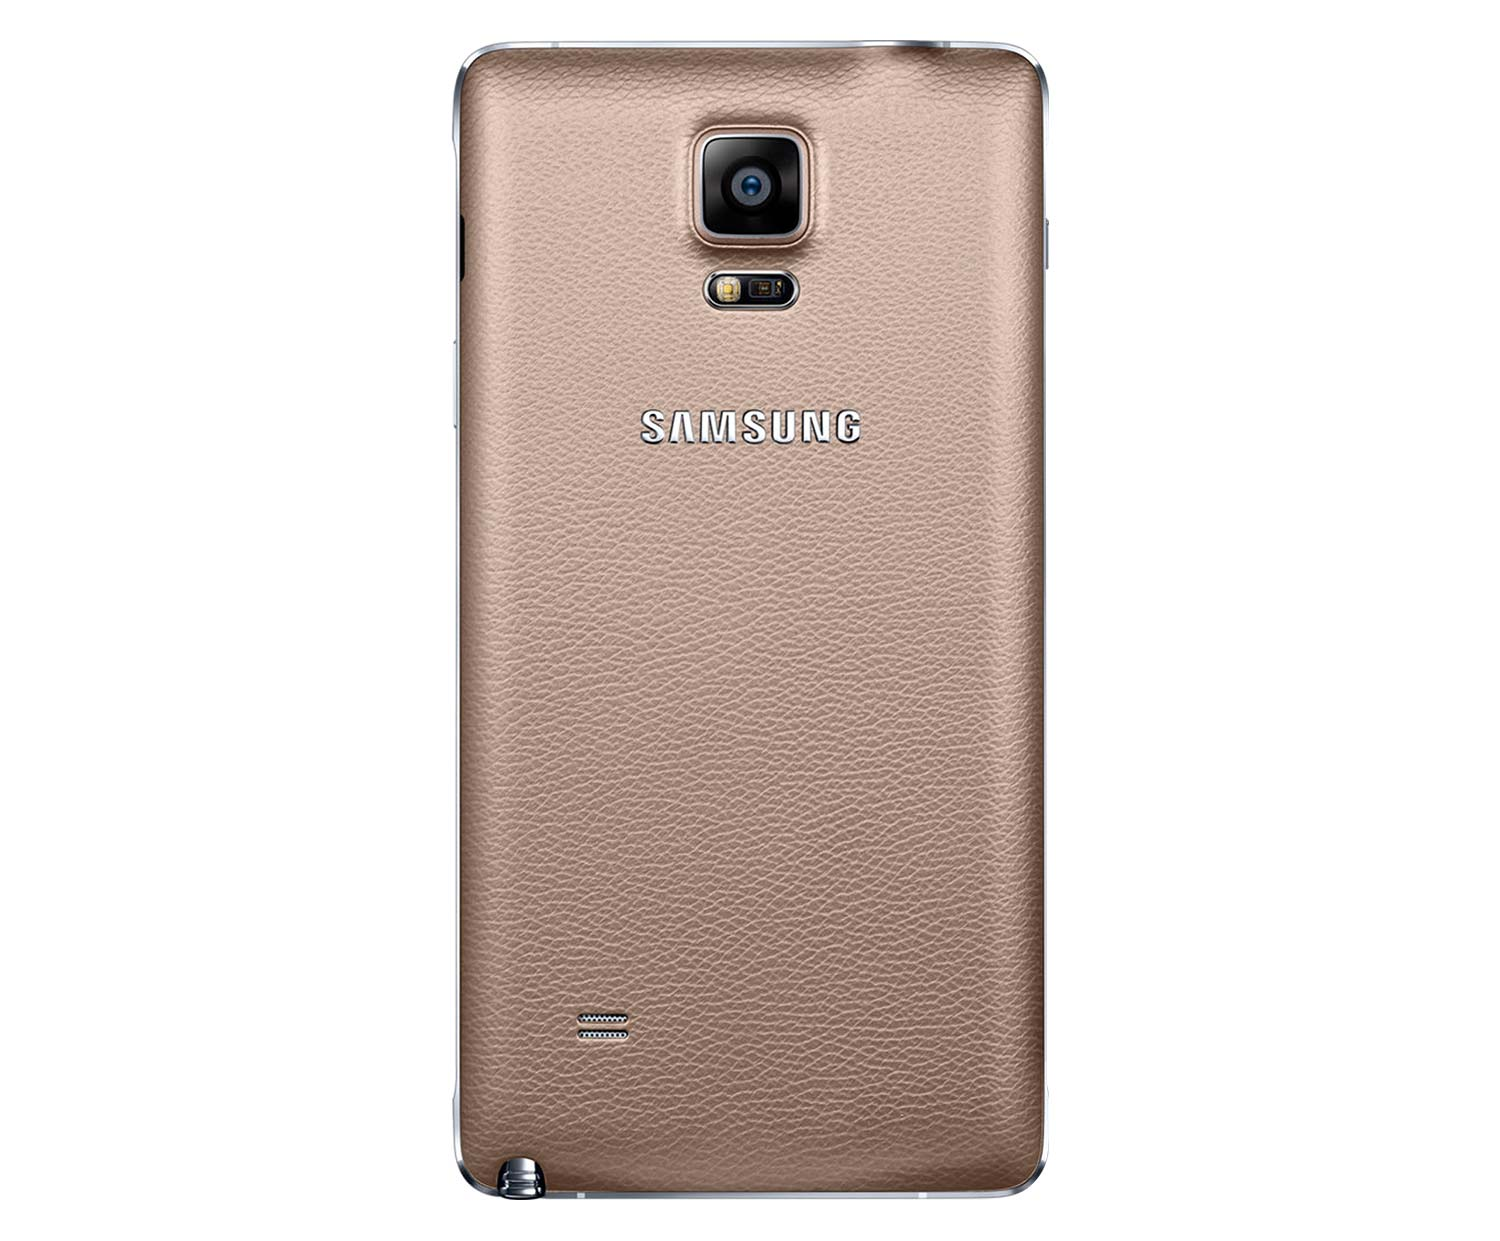 samsung galaxy note4 32 gb gold. Black Bedroom Furniture Sets. Home Design Ideas